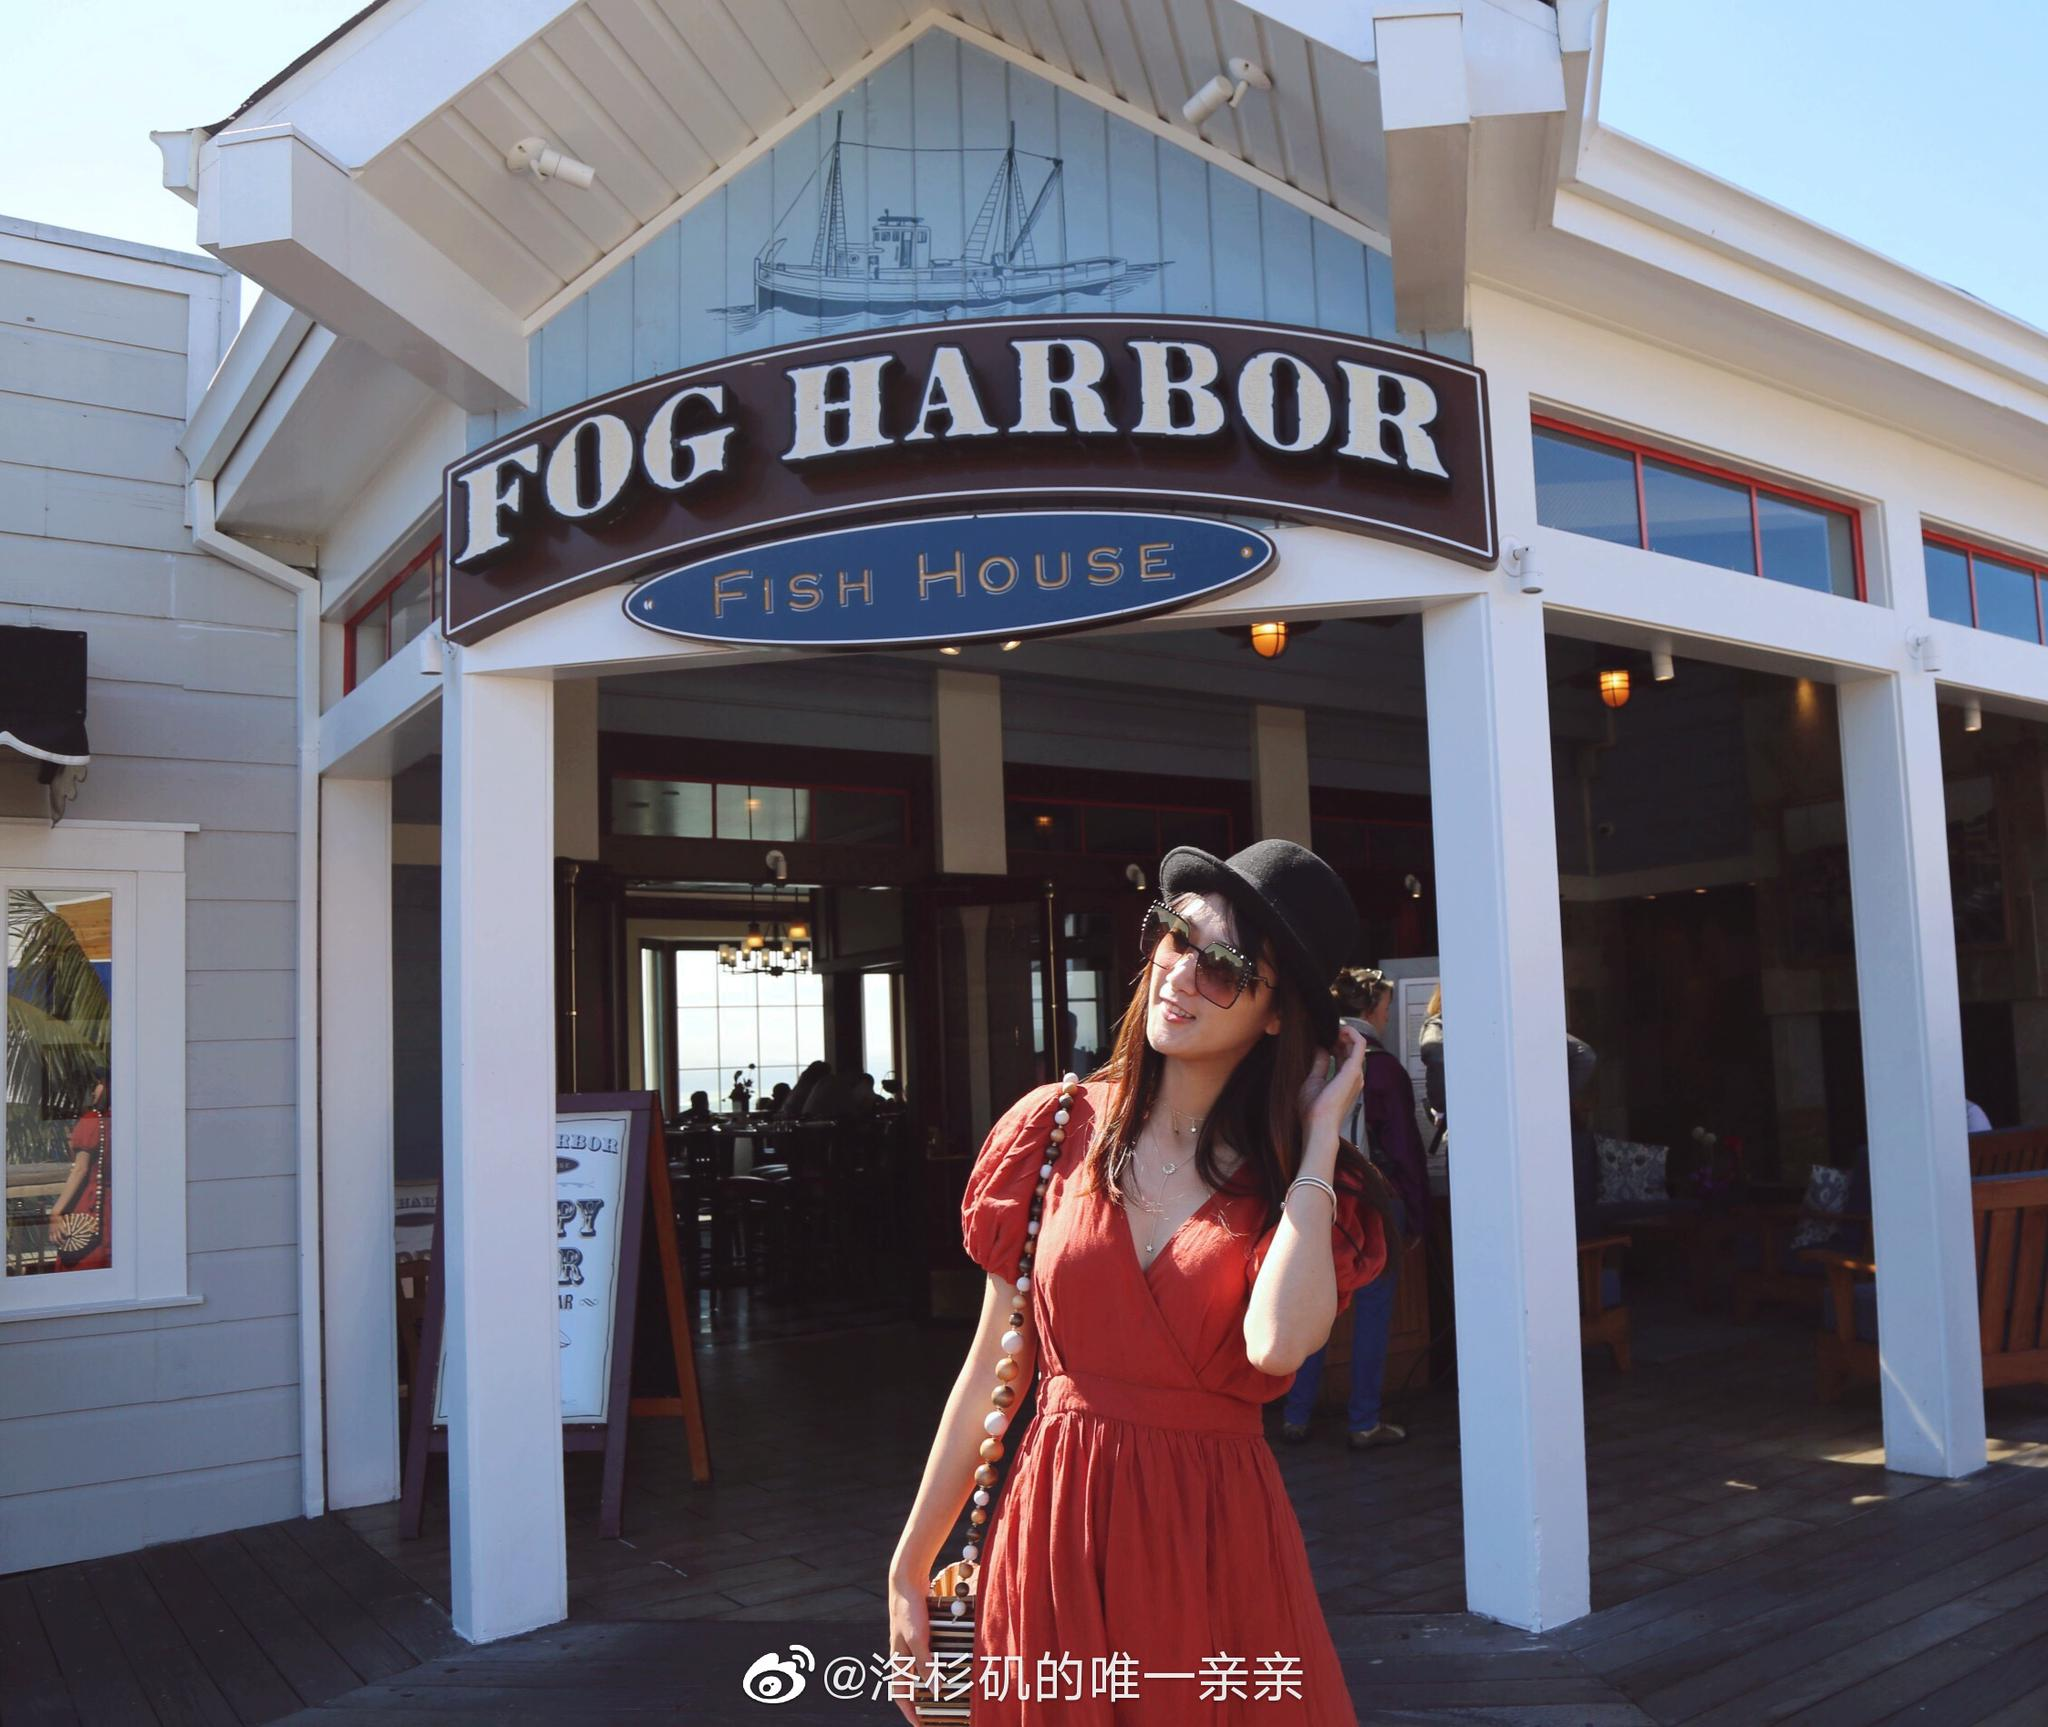 📍旧金山 Fog Harbor Fish House 渔人码